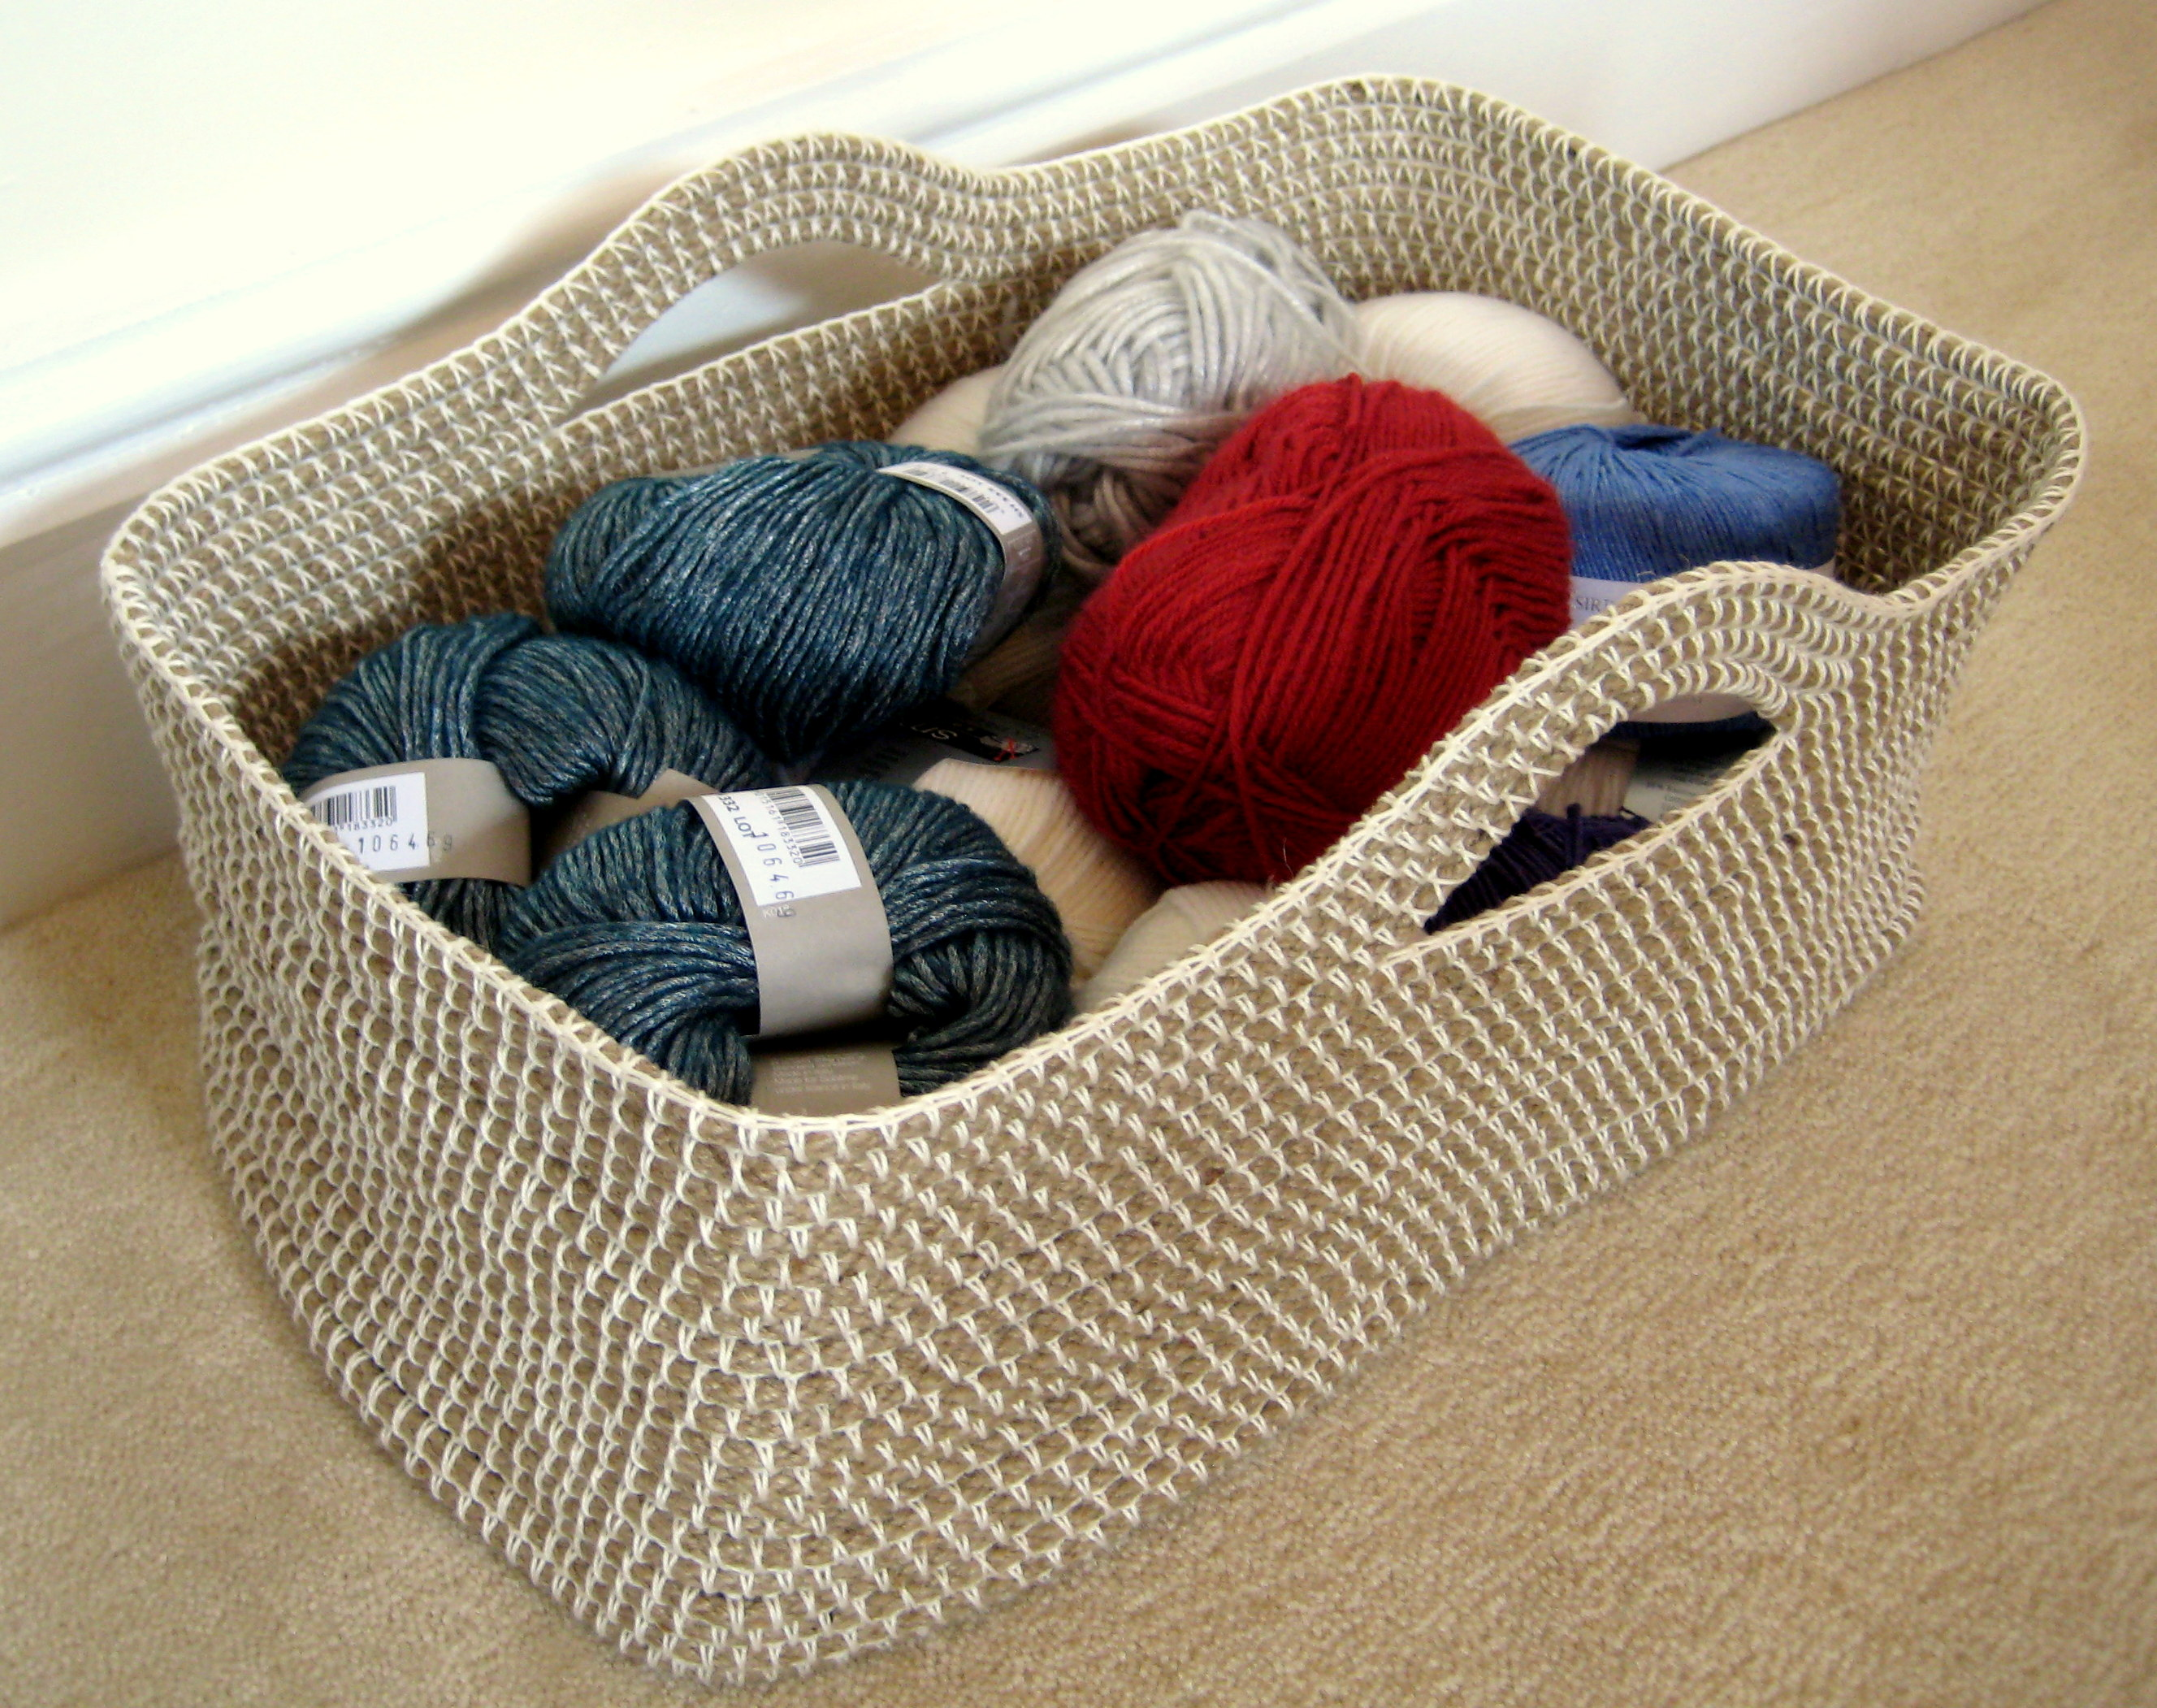 Crochet Rope Basket : Crochet Rope Basket - CrochetMe